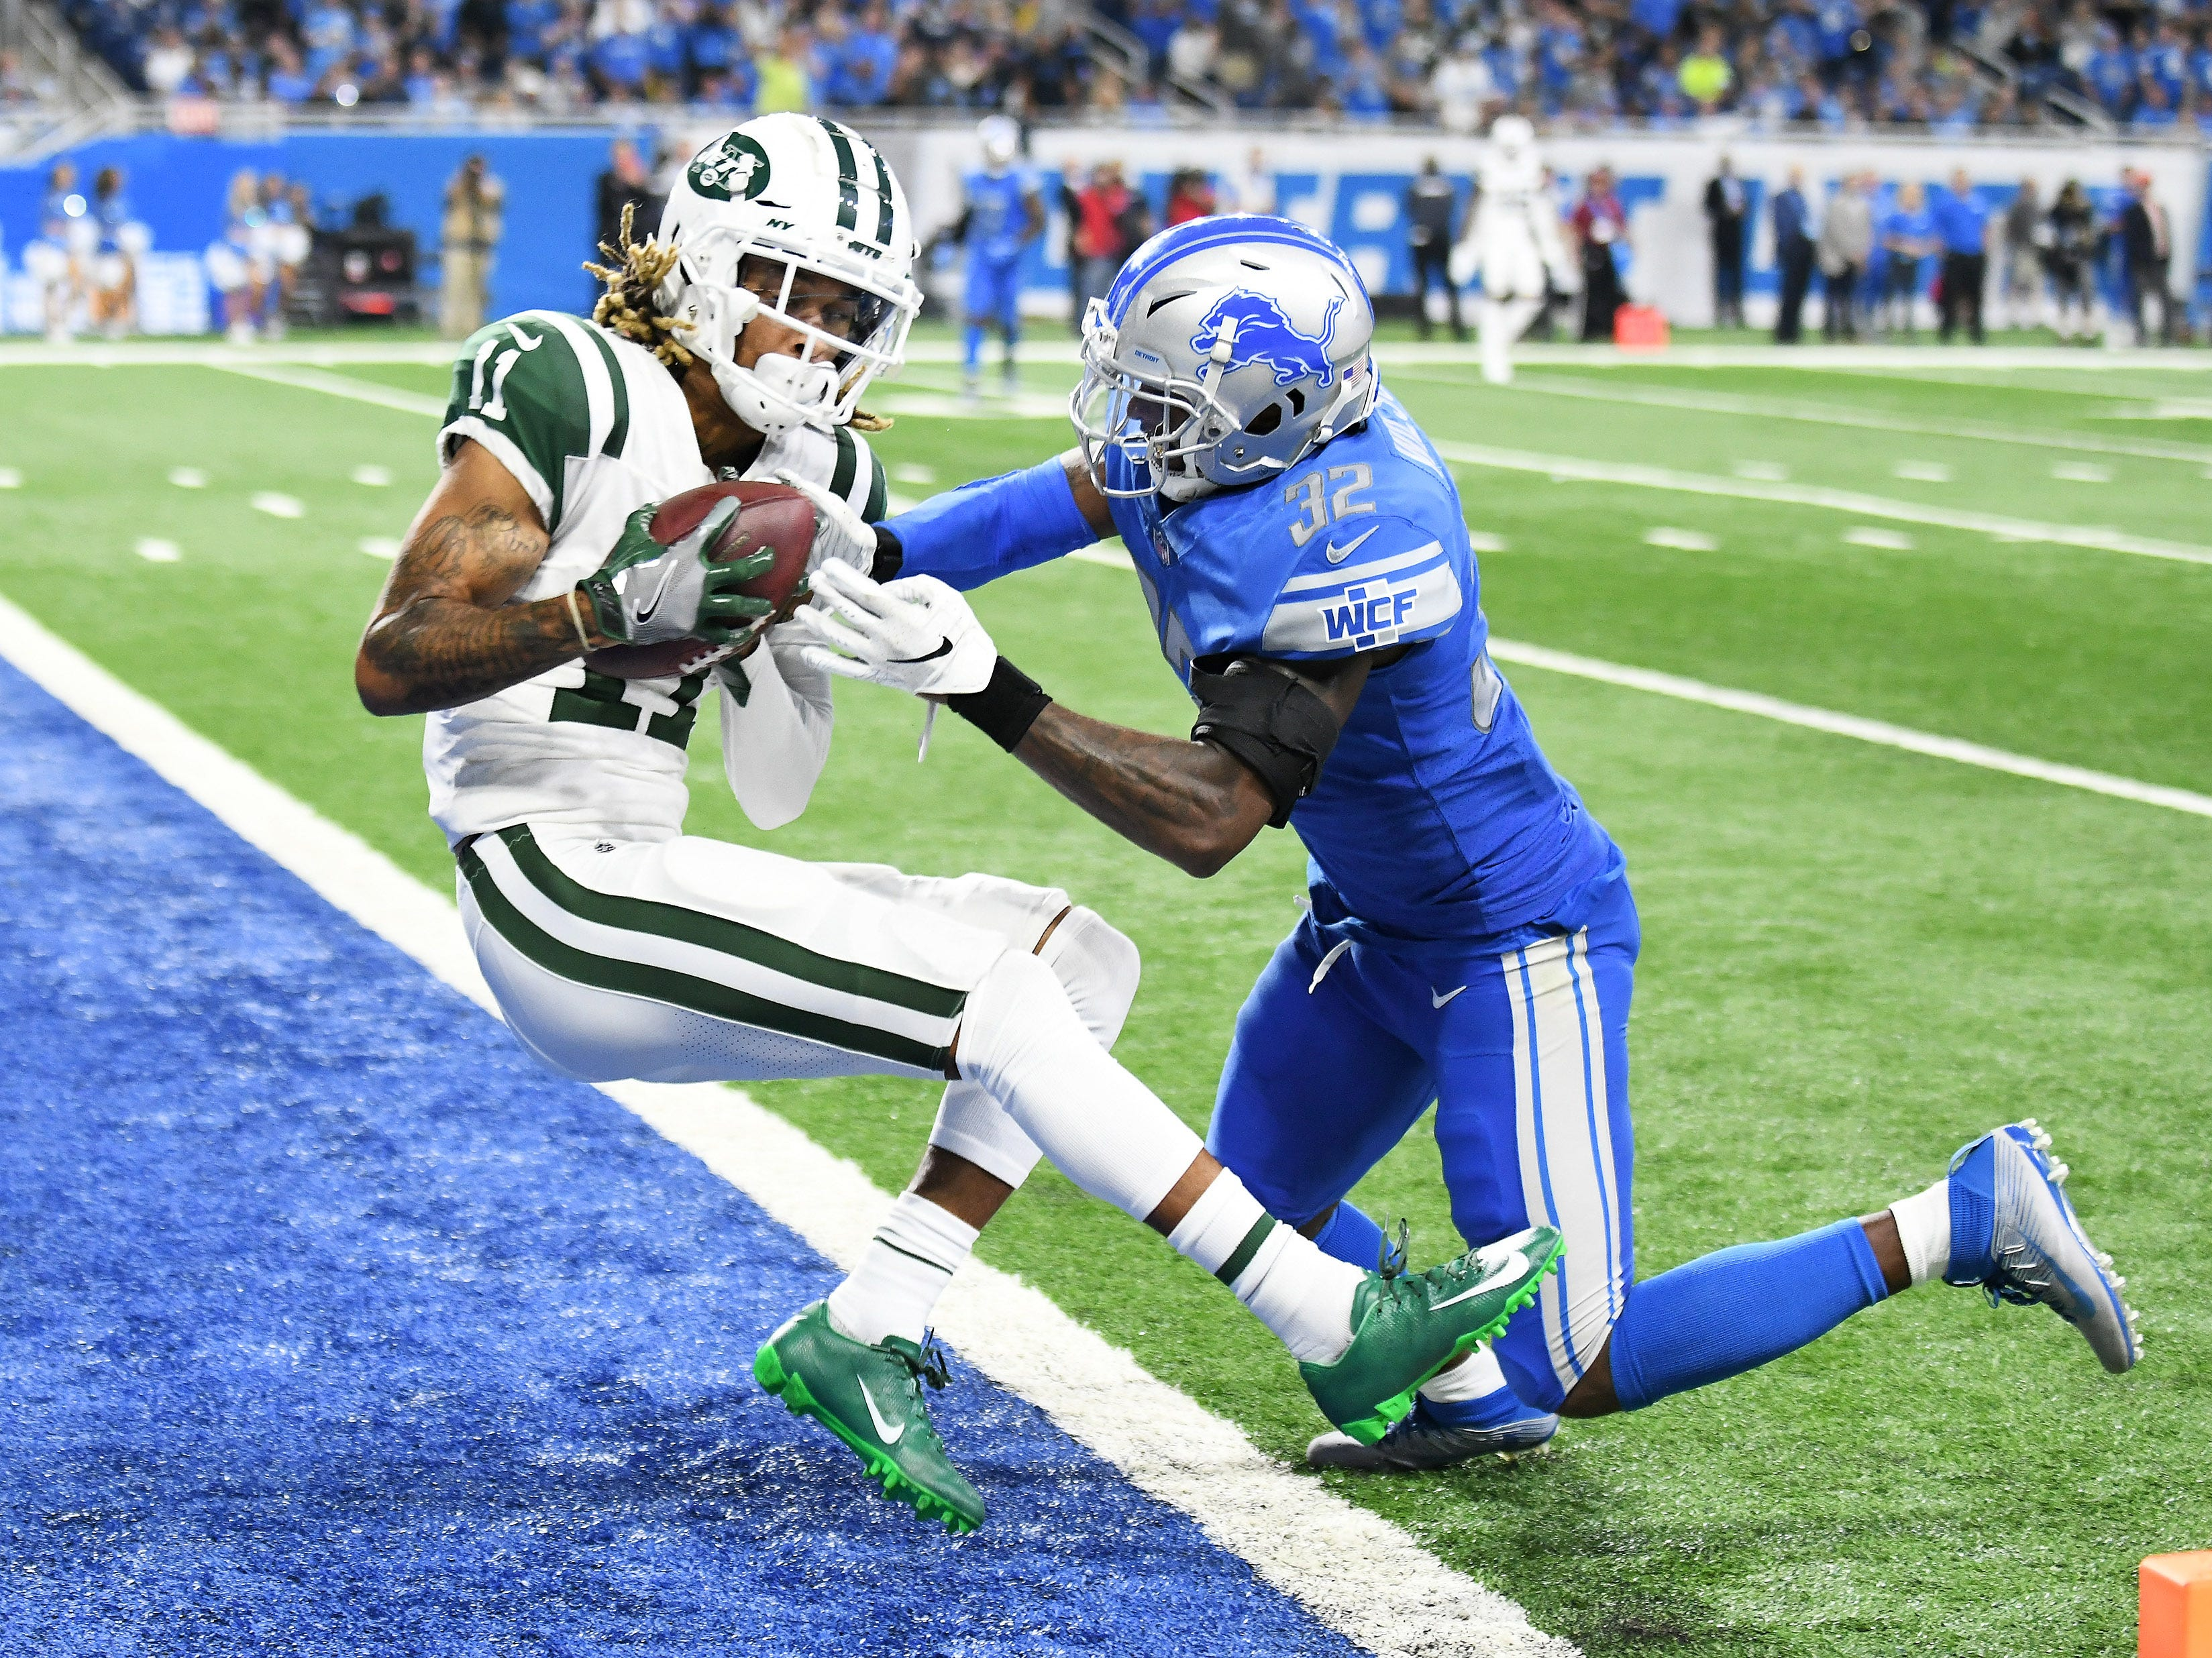 Jets' Robby Anderson (11) holds on to the ball to score a touchdown despite the efforts of Lions defensive back Tavon Wilson in the first quarter.